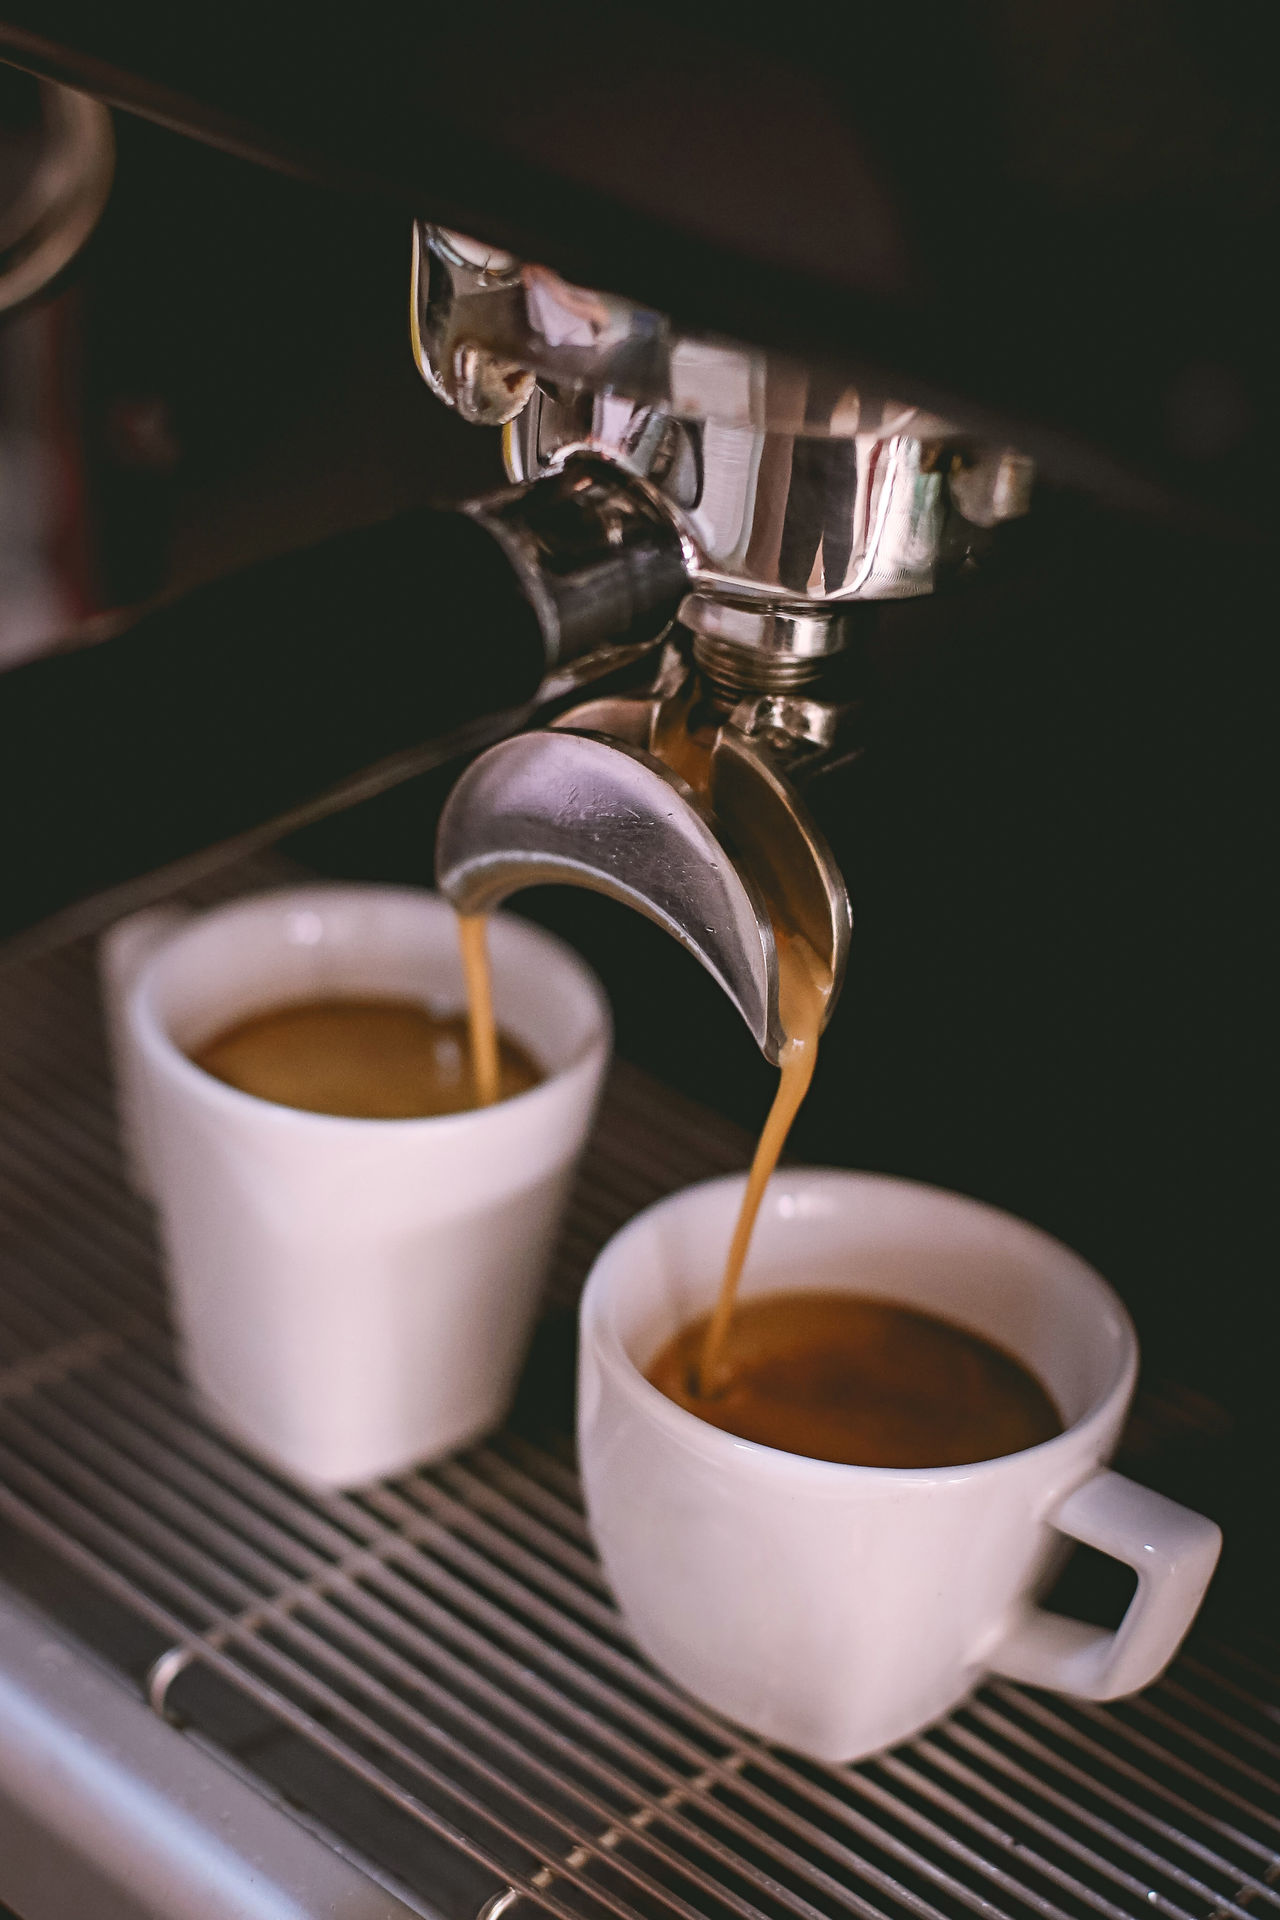 Espresso machine taking two coffee cups Close-up Coffee - Drink Coffee Cup Cup Drink Espresso Espresso Maker Food And Drink Indoors  Machinery No People